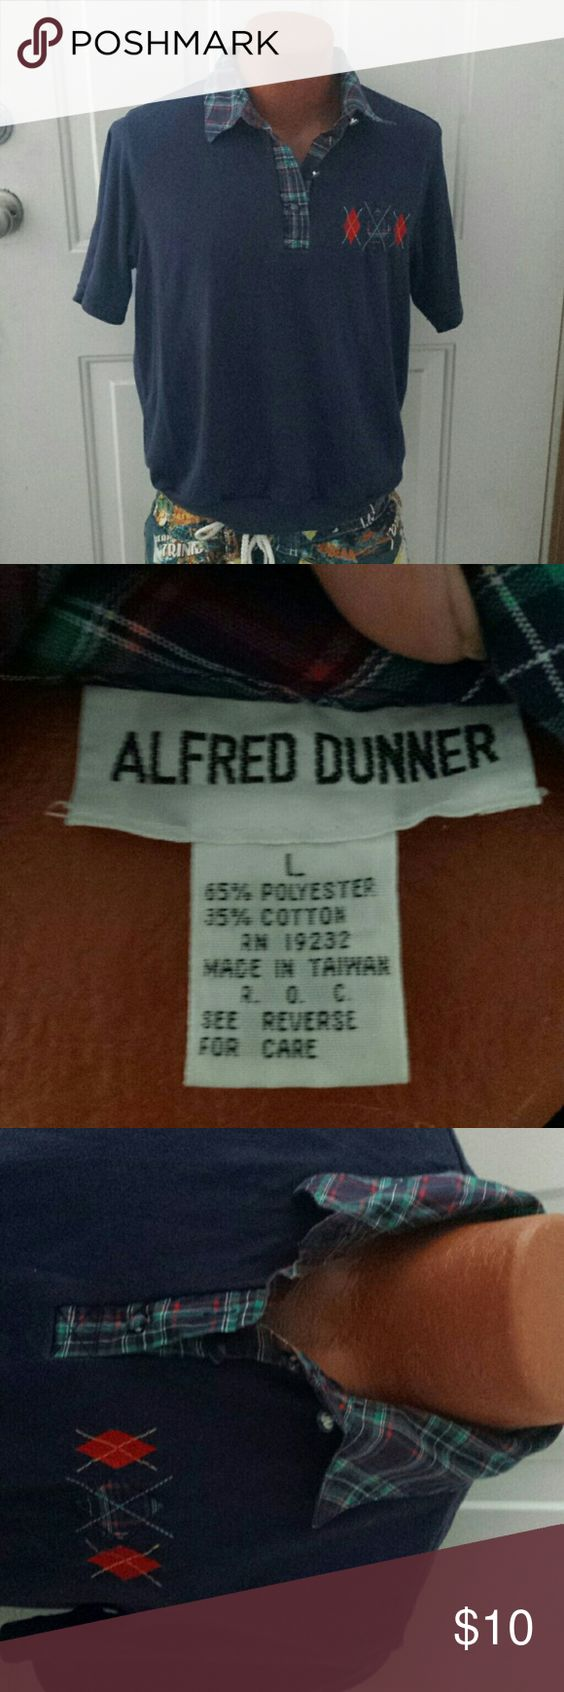 Alfred Dunner Navy Banded Bottom Collared T-shirt Navy T-shirt with banded bottom,  plaid collar with short placket and fabric covered buttons. Diamond accent on left chest. Cotton/poly blend. Lightly worn. Alfred Dunner Tops Tees - Short Sleeve